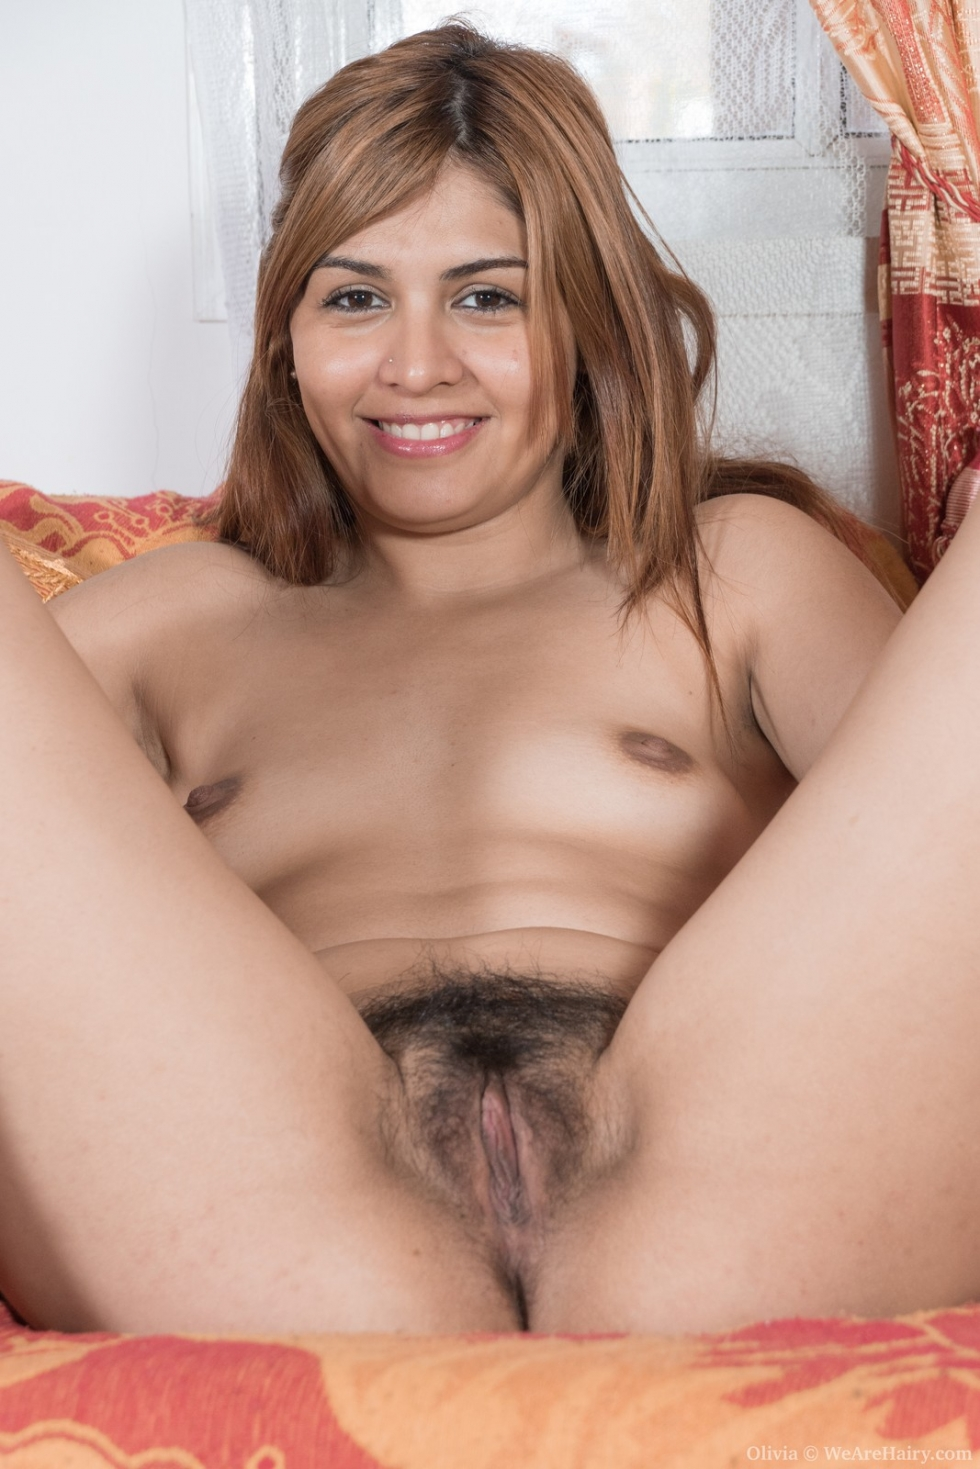 Shemale with a big dick